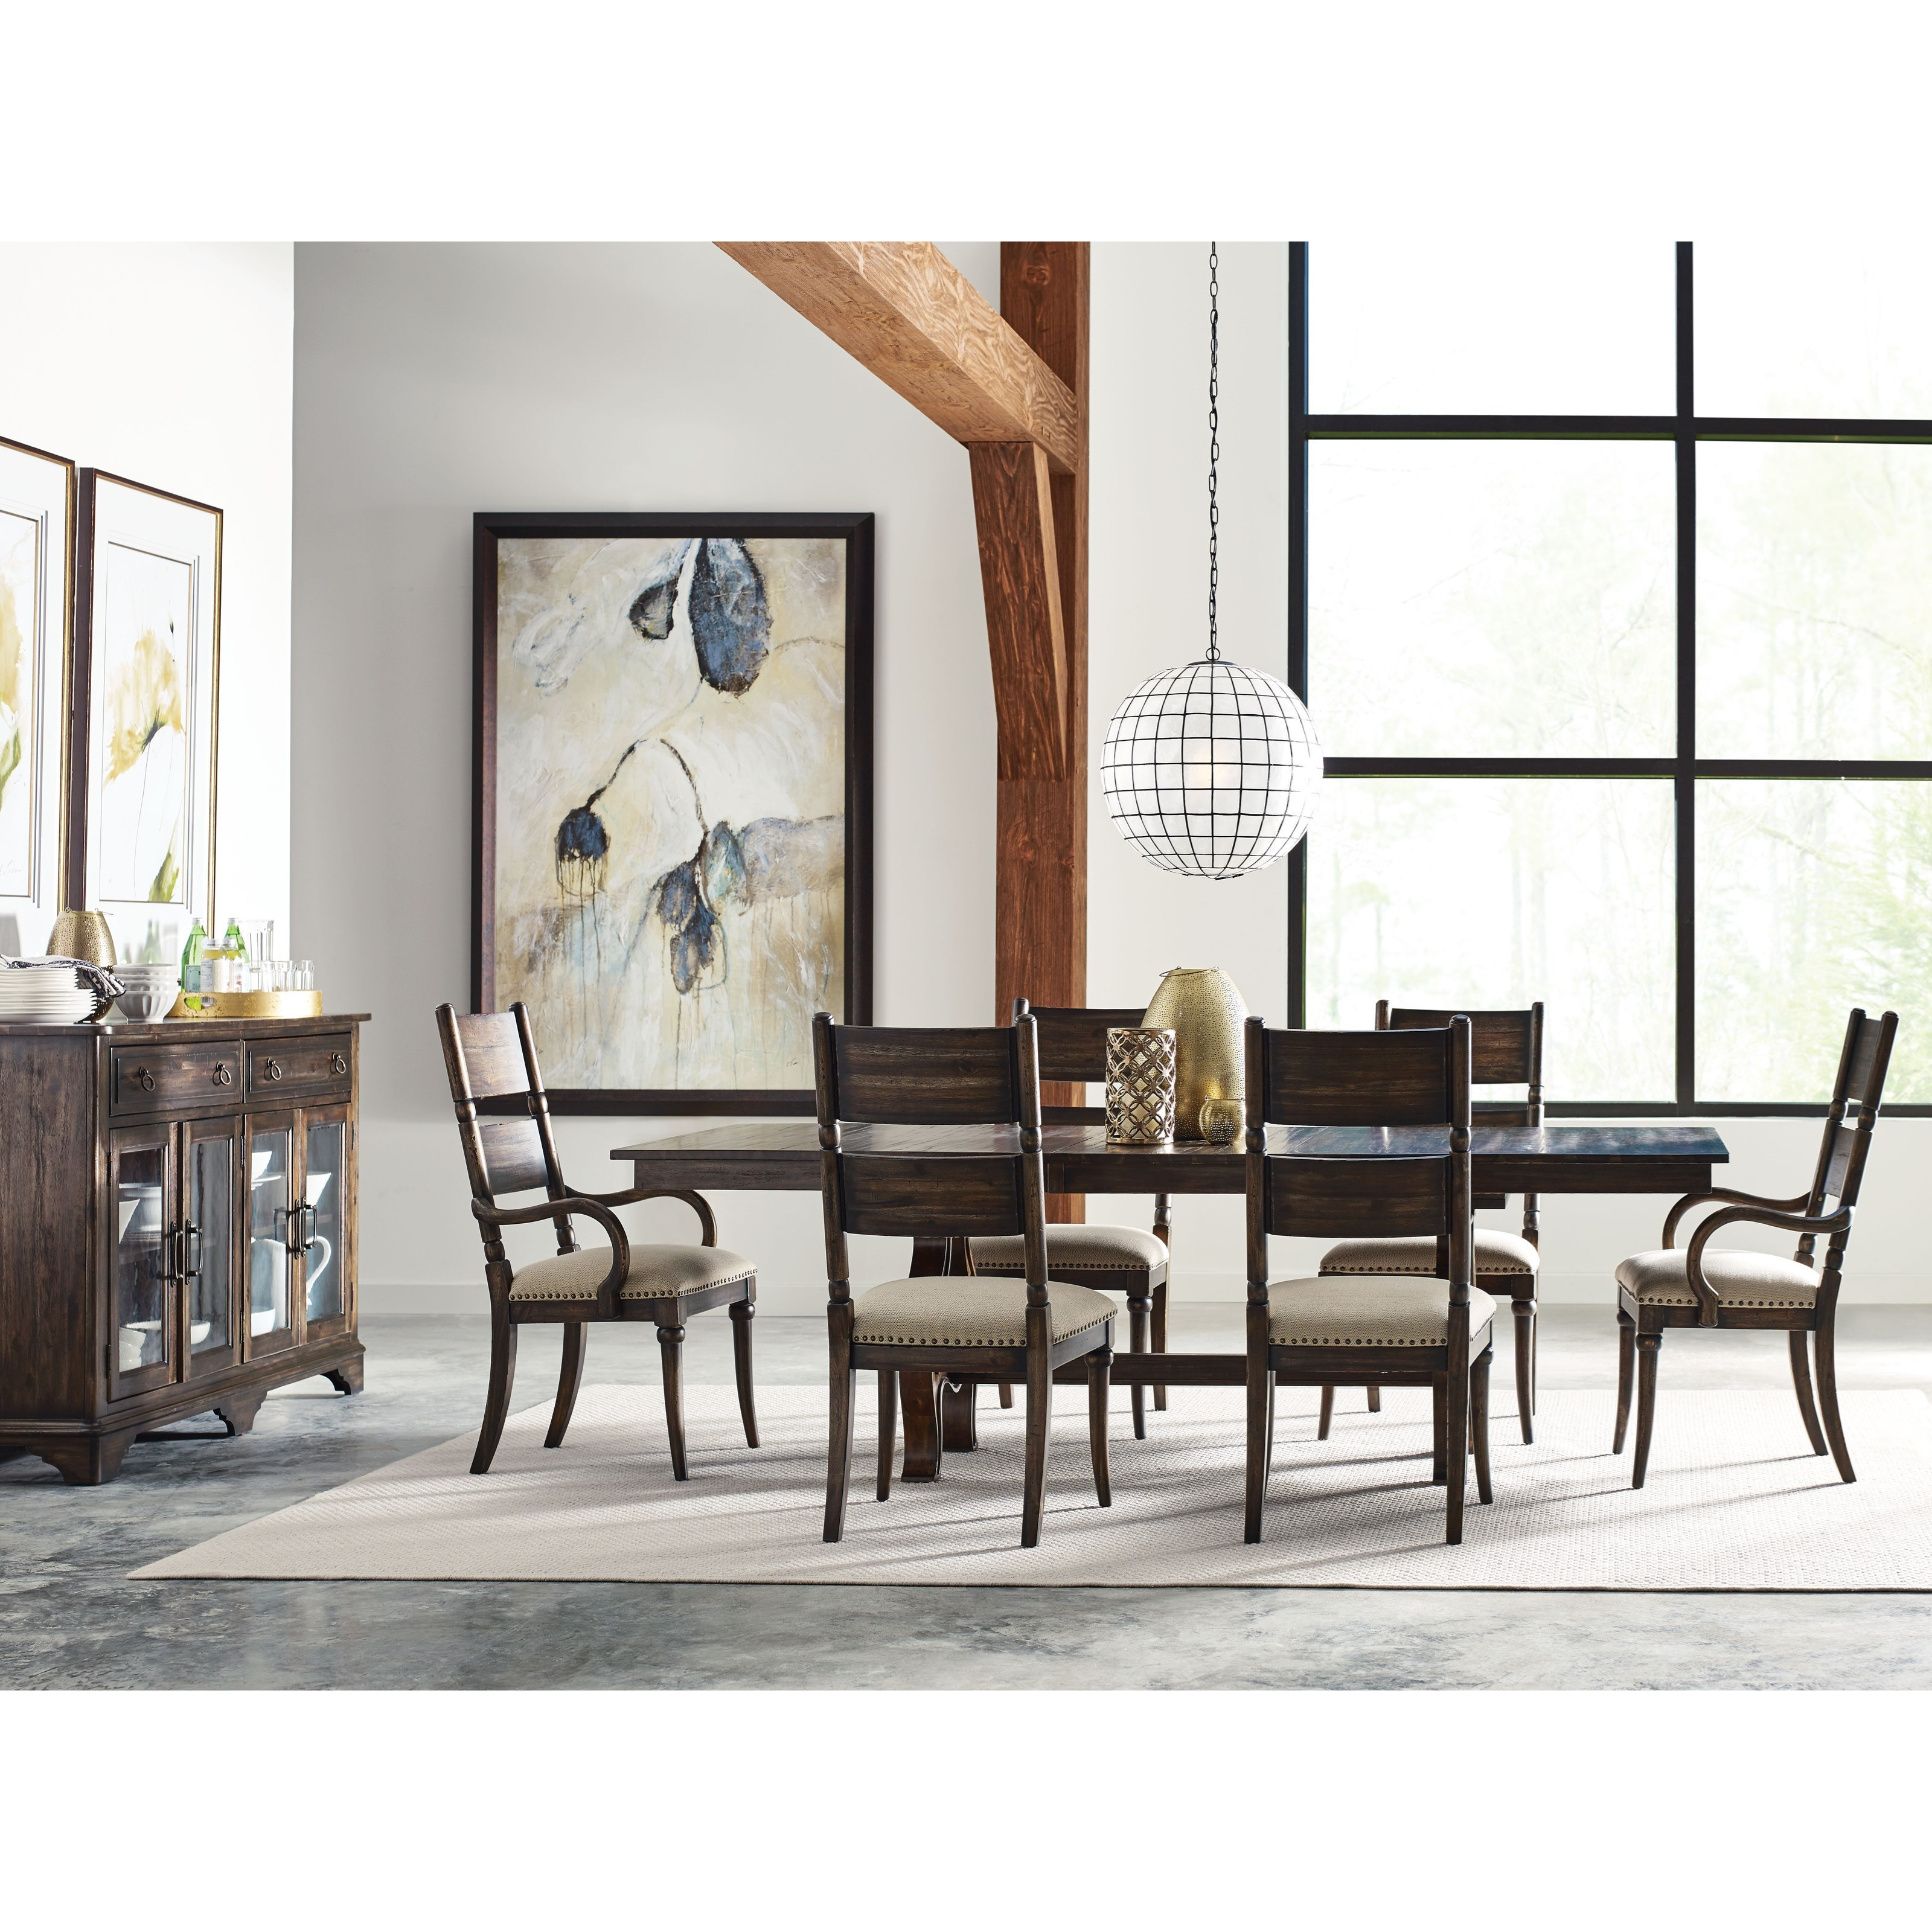 Kincaid Furniture Wildfire 8 Pc Formal Dining Room Group - Item Number: 86 Dining Room Group 2